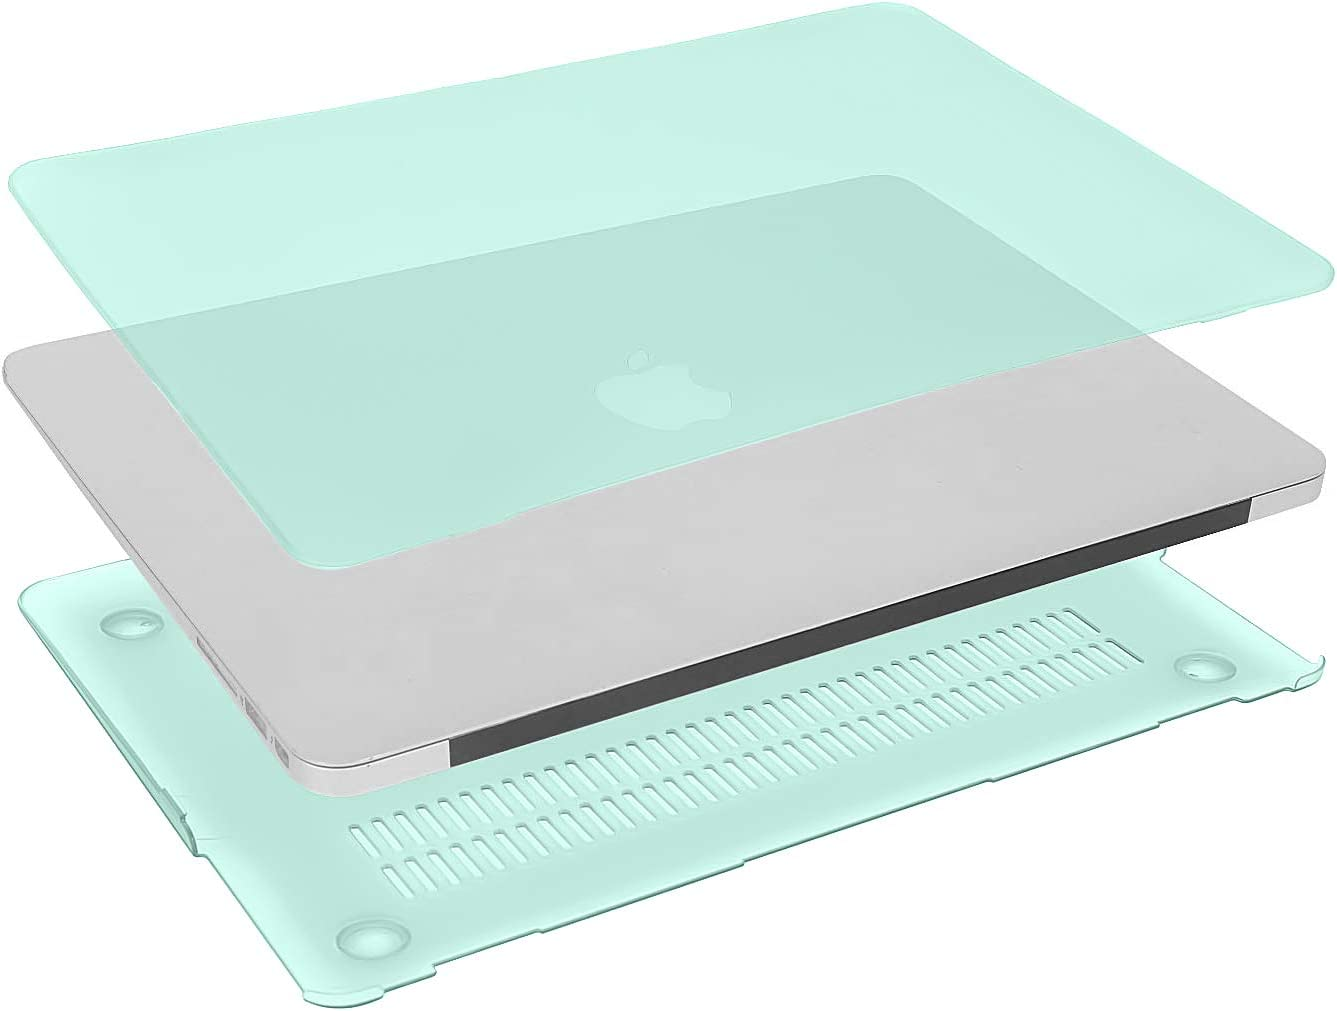 MOSISO MacBook Air 13 inch Case Older Version 2010-2017 Release A1369 A1466 Plastic Hard Shell Case /& Keyboard Cover Skin /& Wipe Cleaning Cloth Only Compatible with MacBook Air 13 inch Mint Green